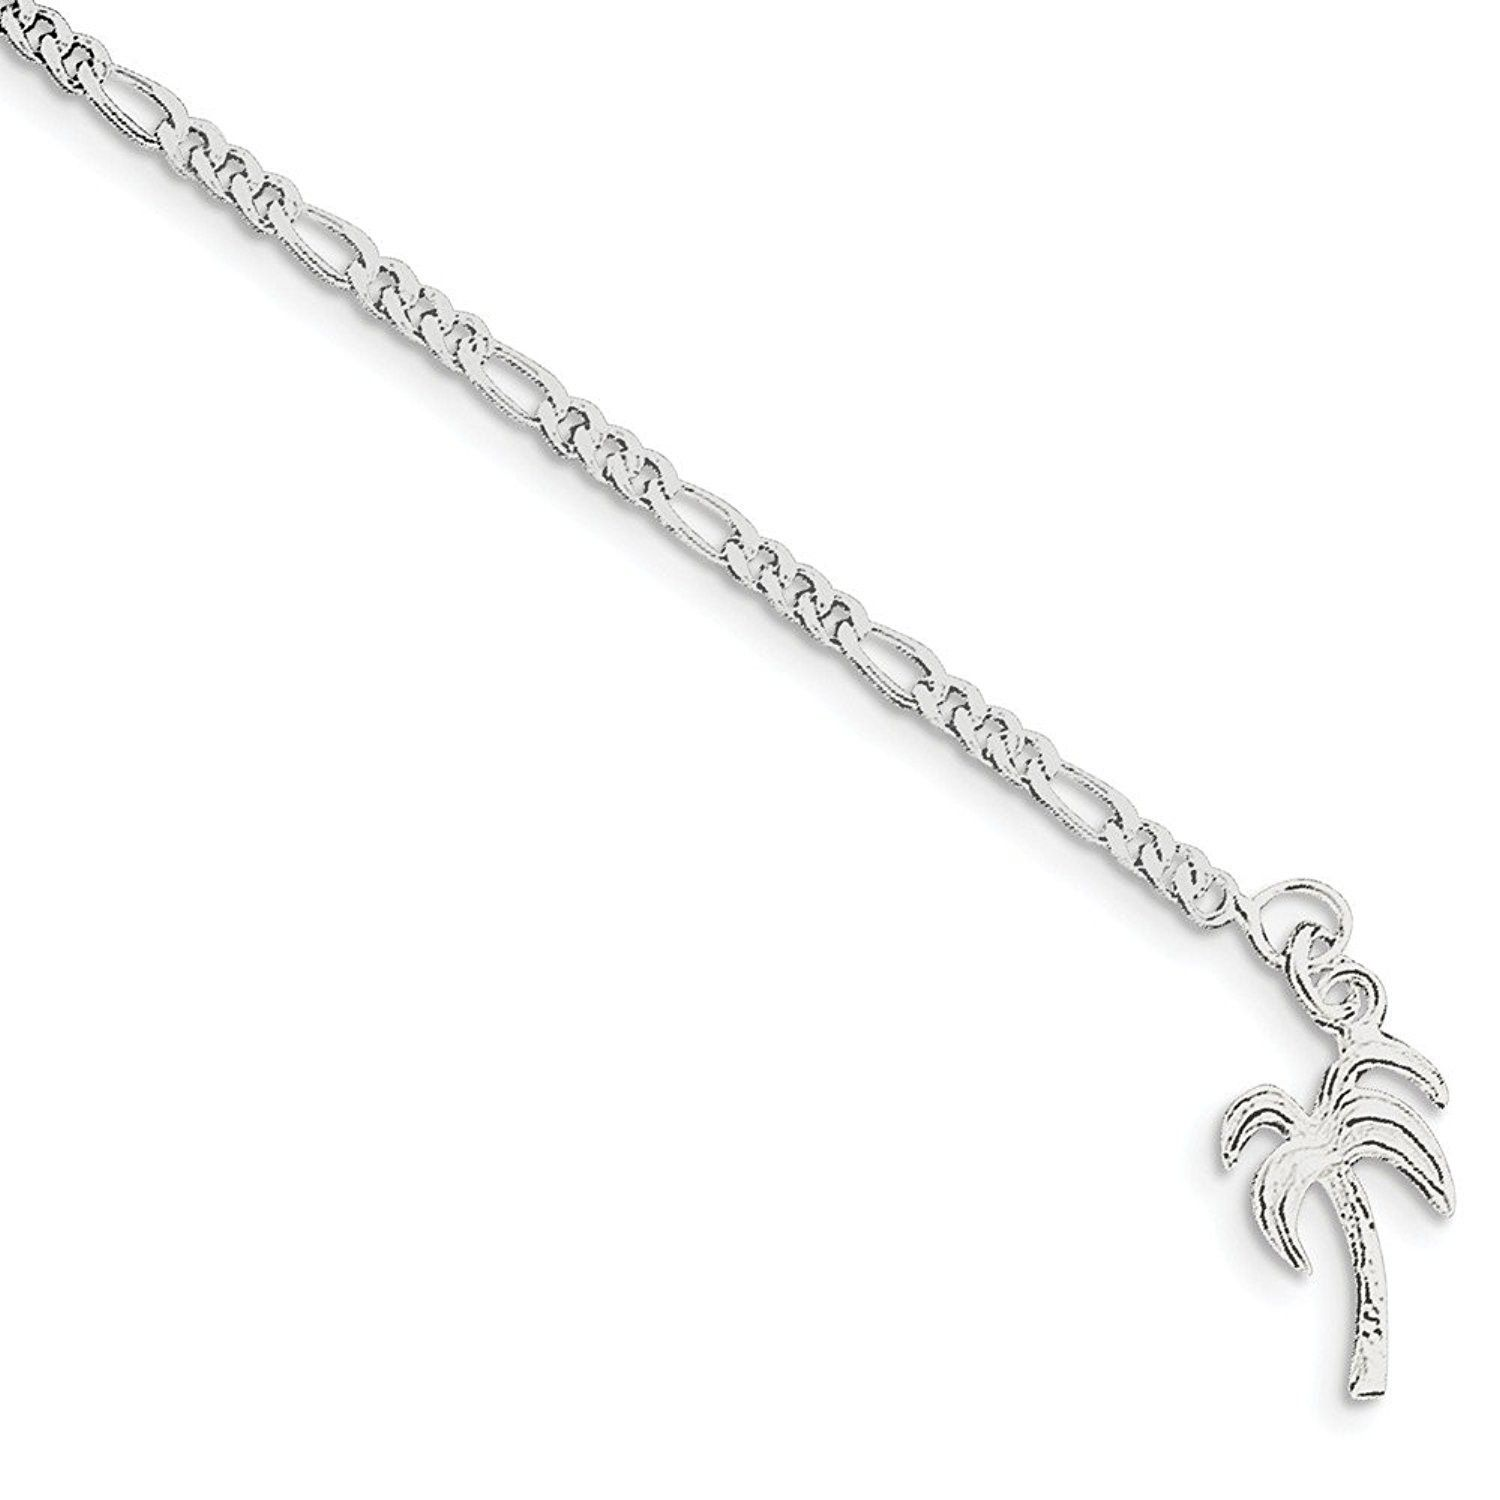 Sterling Silver Palm Tree Anklet Cm115gogleb Home Anklets Designerjewelry Fashionwomen Footeroutfit